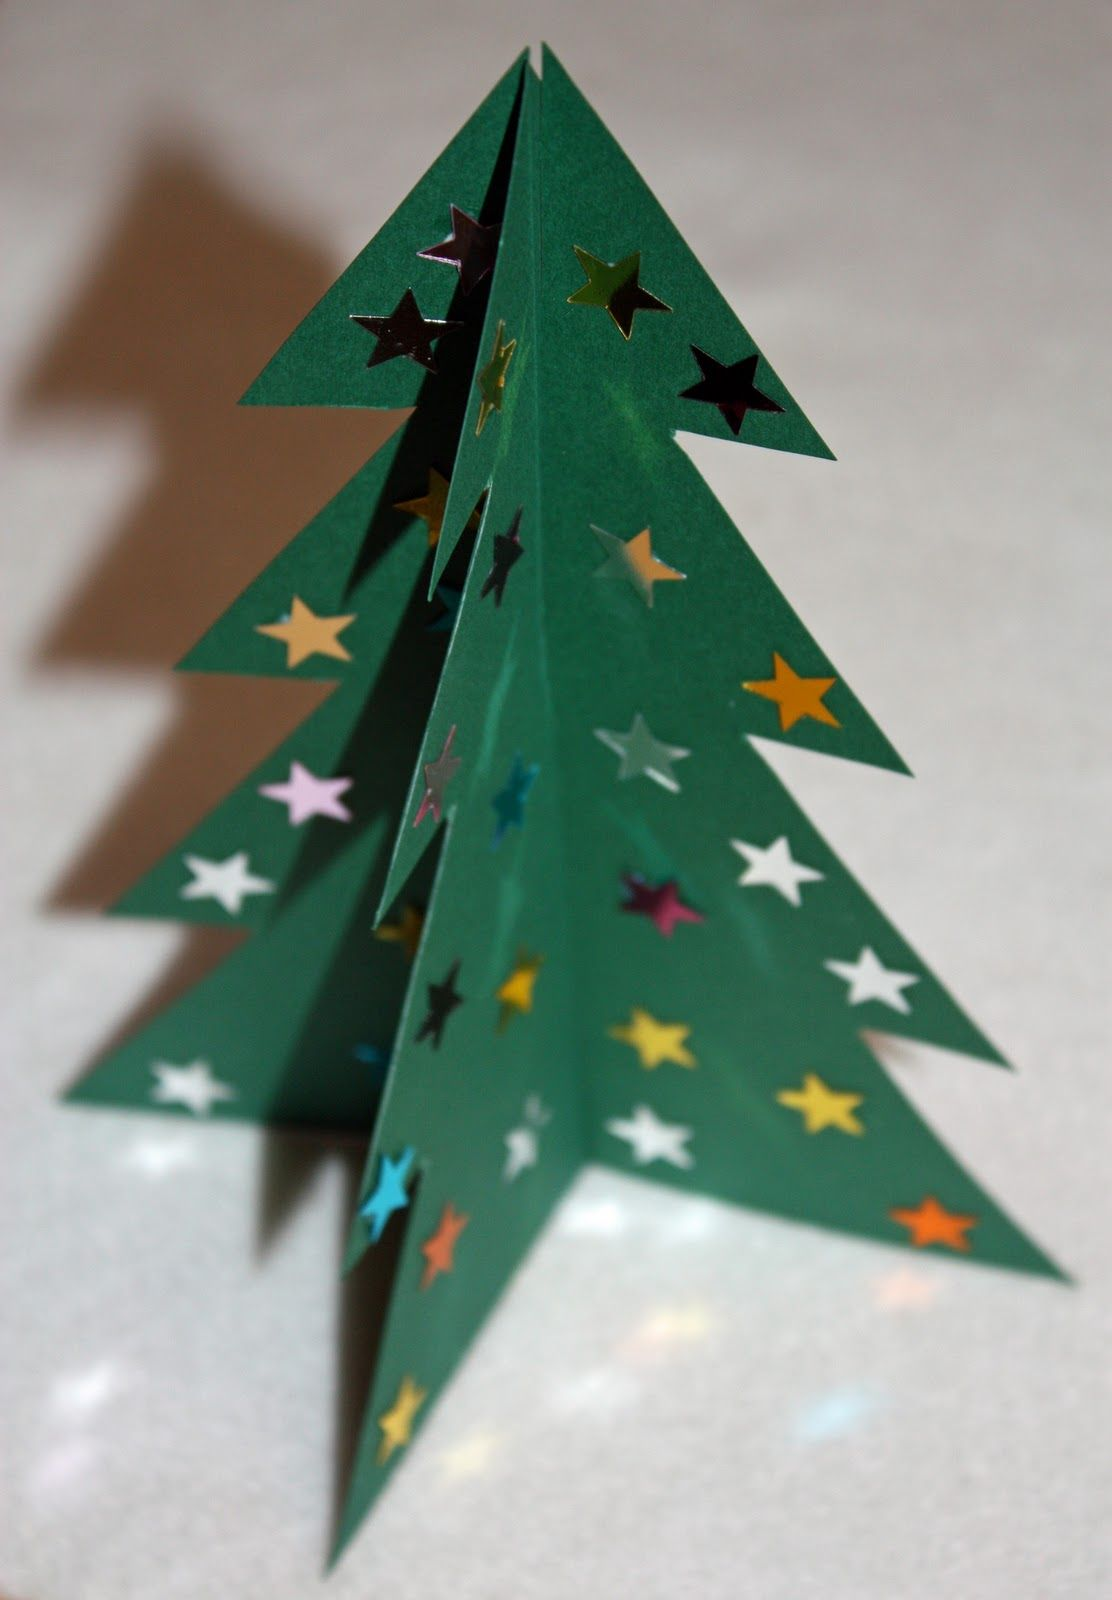 Make A 3d Card Christmas Tree With Printable Template We Did This One With Stars And Al Christmas Tree Template 3d Christmas Tree Card Christmas Tree Cards